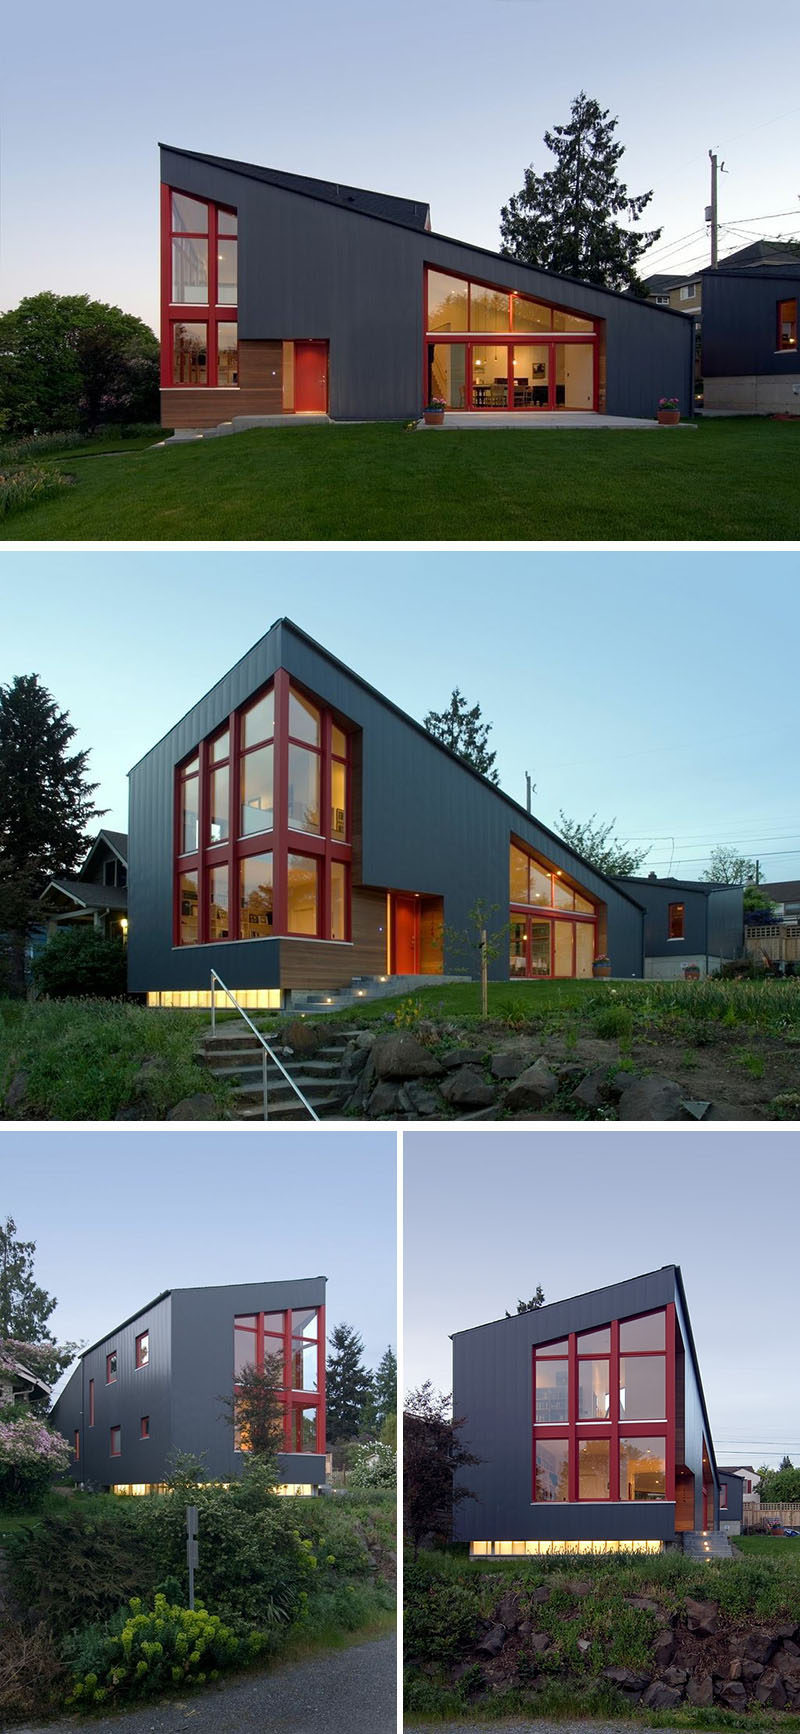 Stettler Design together with Paul Michael Davis Architects, have recently completed a new house in Seattle, Washington, that has a sloped roof and large windows that look out over the neighborhood. #ModernHouse #SlopedRoof #ModernArchitecture #Windows